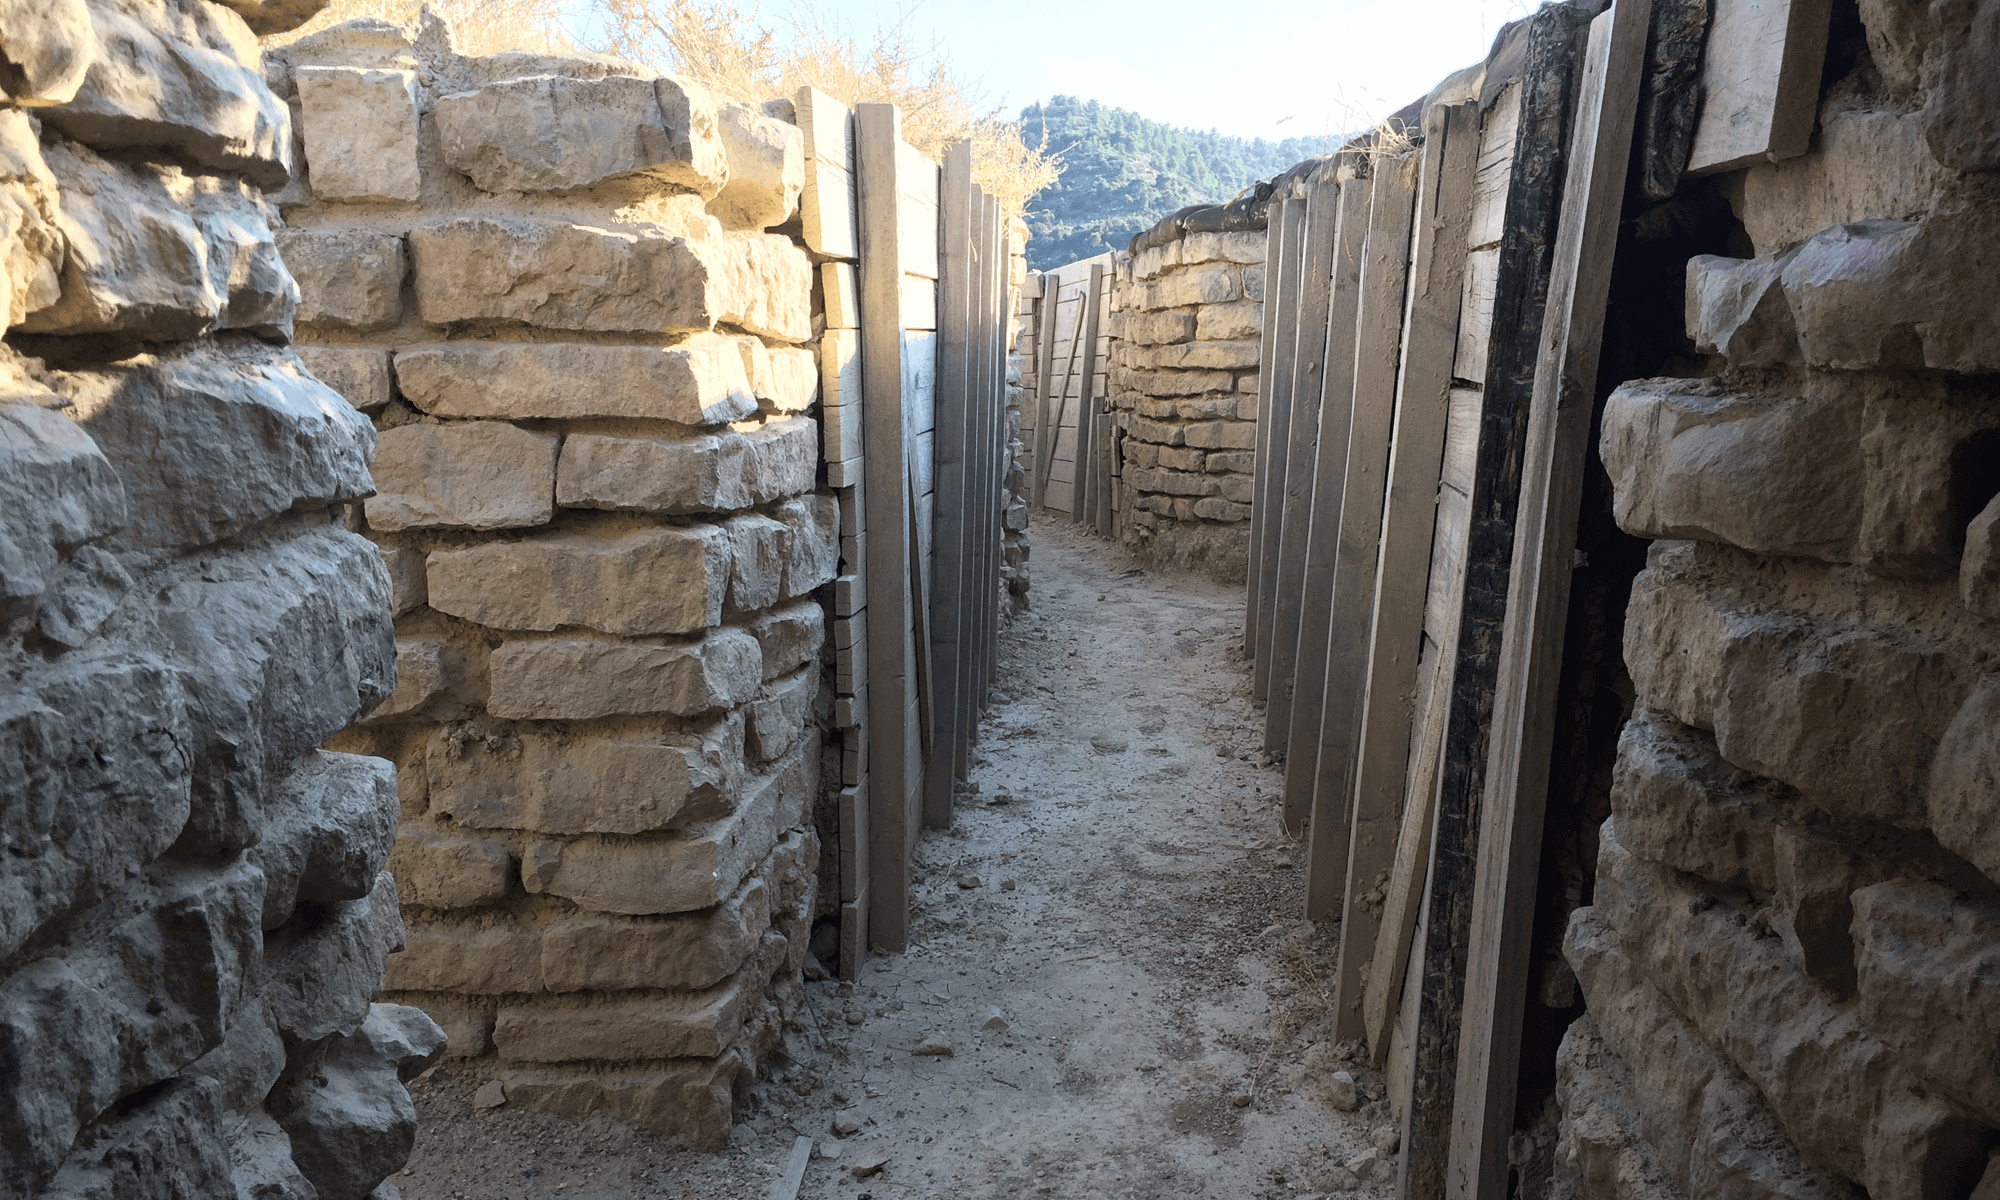 George Orwell Trenches in the Monegros, Spain